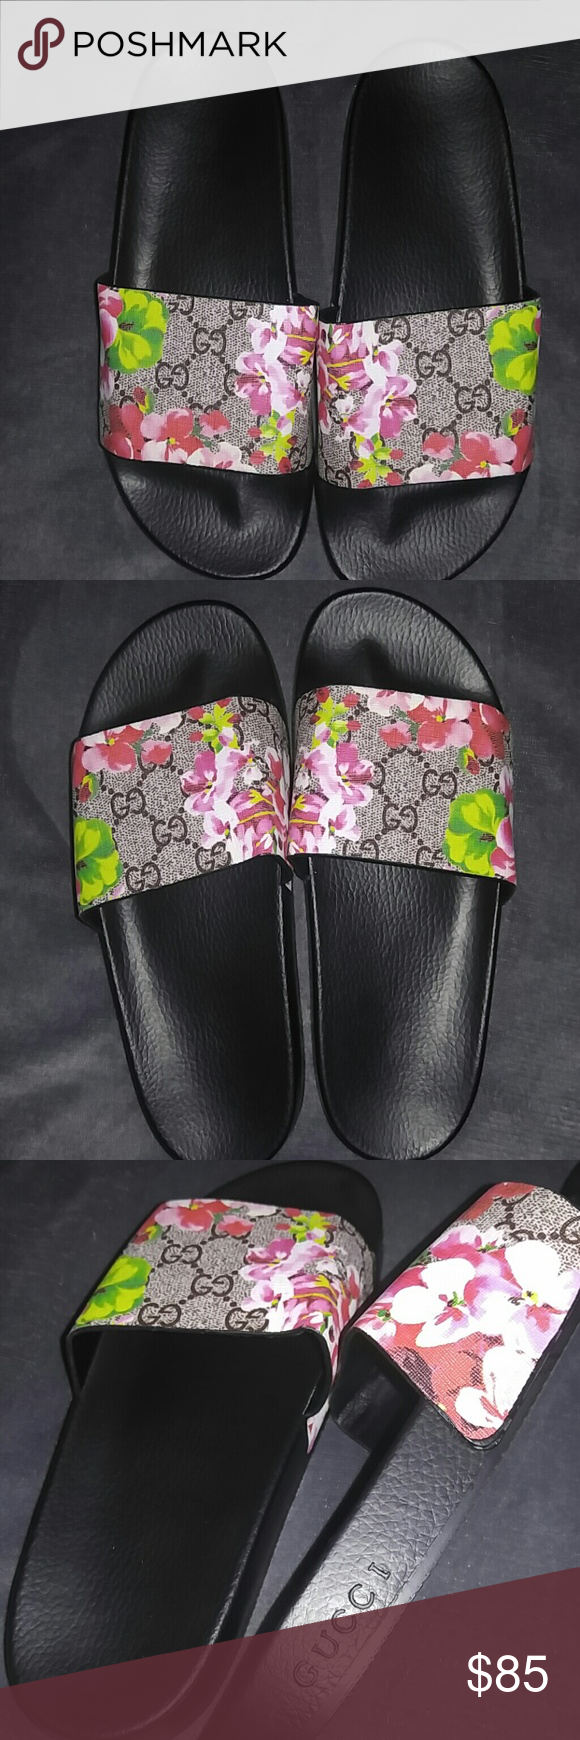 05b7c8e0bd29 Gucci Slides Gucci Inspired floral slides. I m a size 7.5 and these fit too  big. Gucci Shoes Slippers